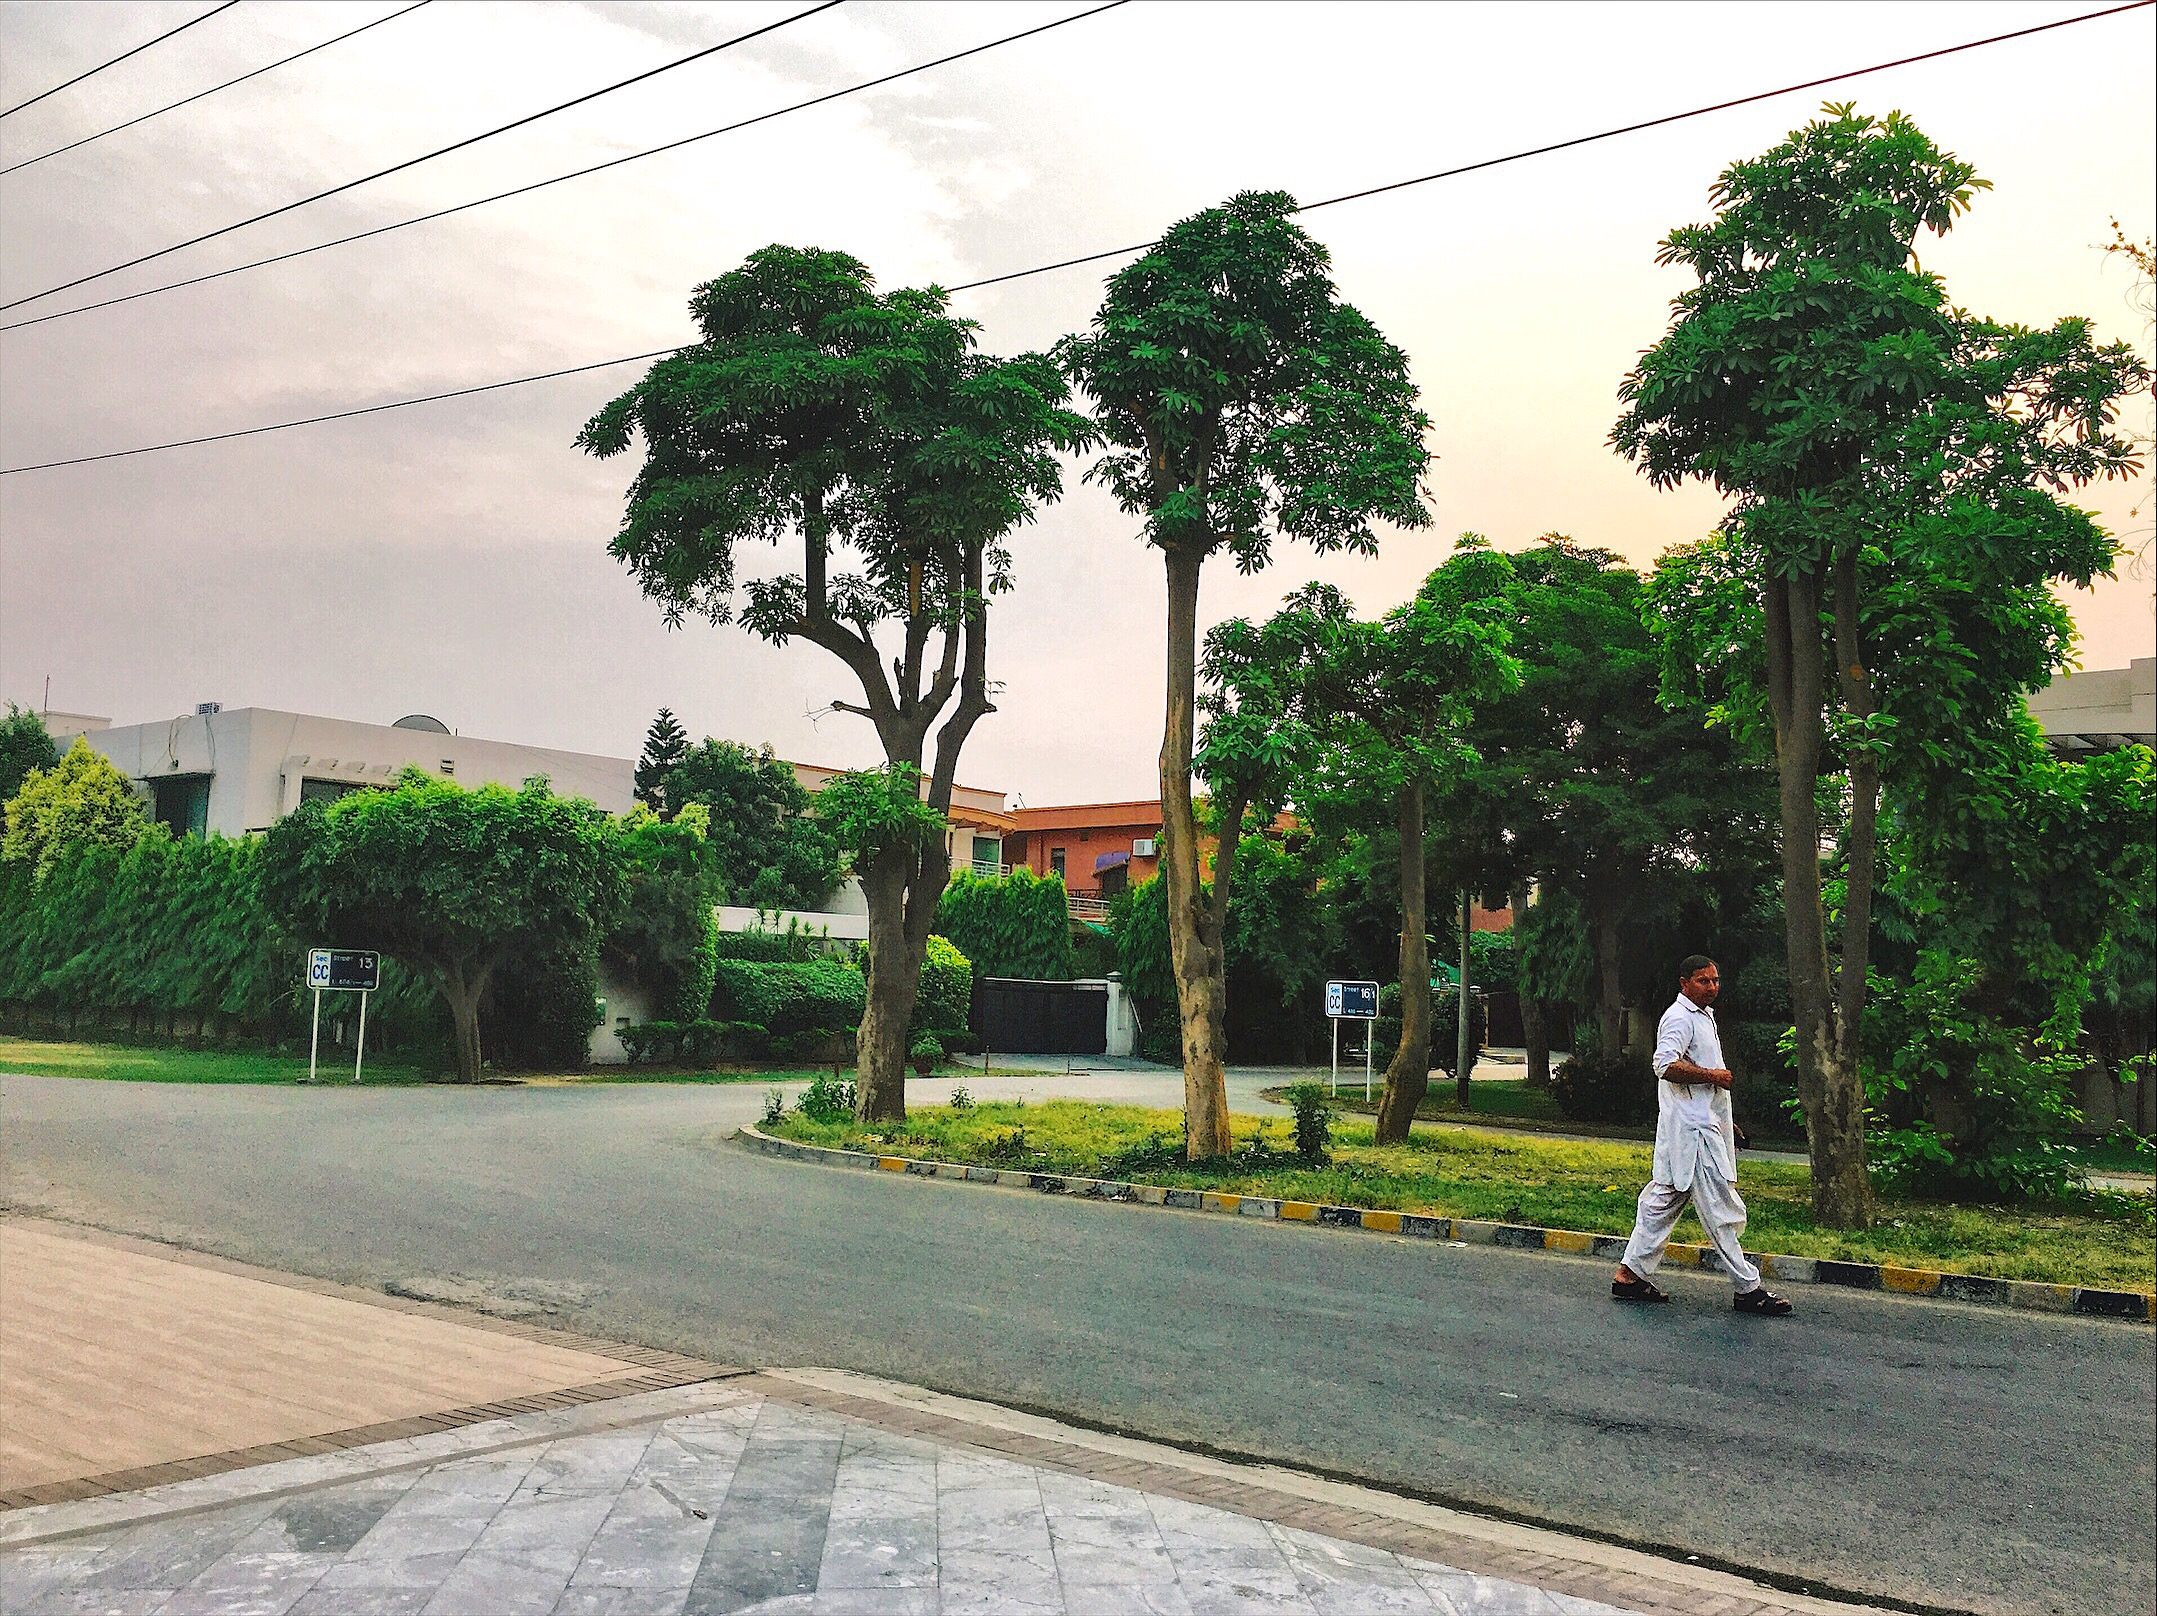 A man walks across the street in the scenic neighborhood of Defence, in Lahore, Pakistan